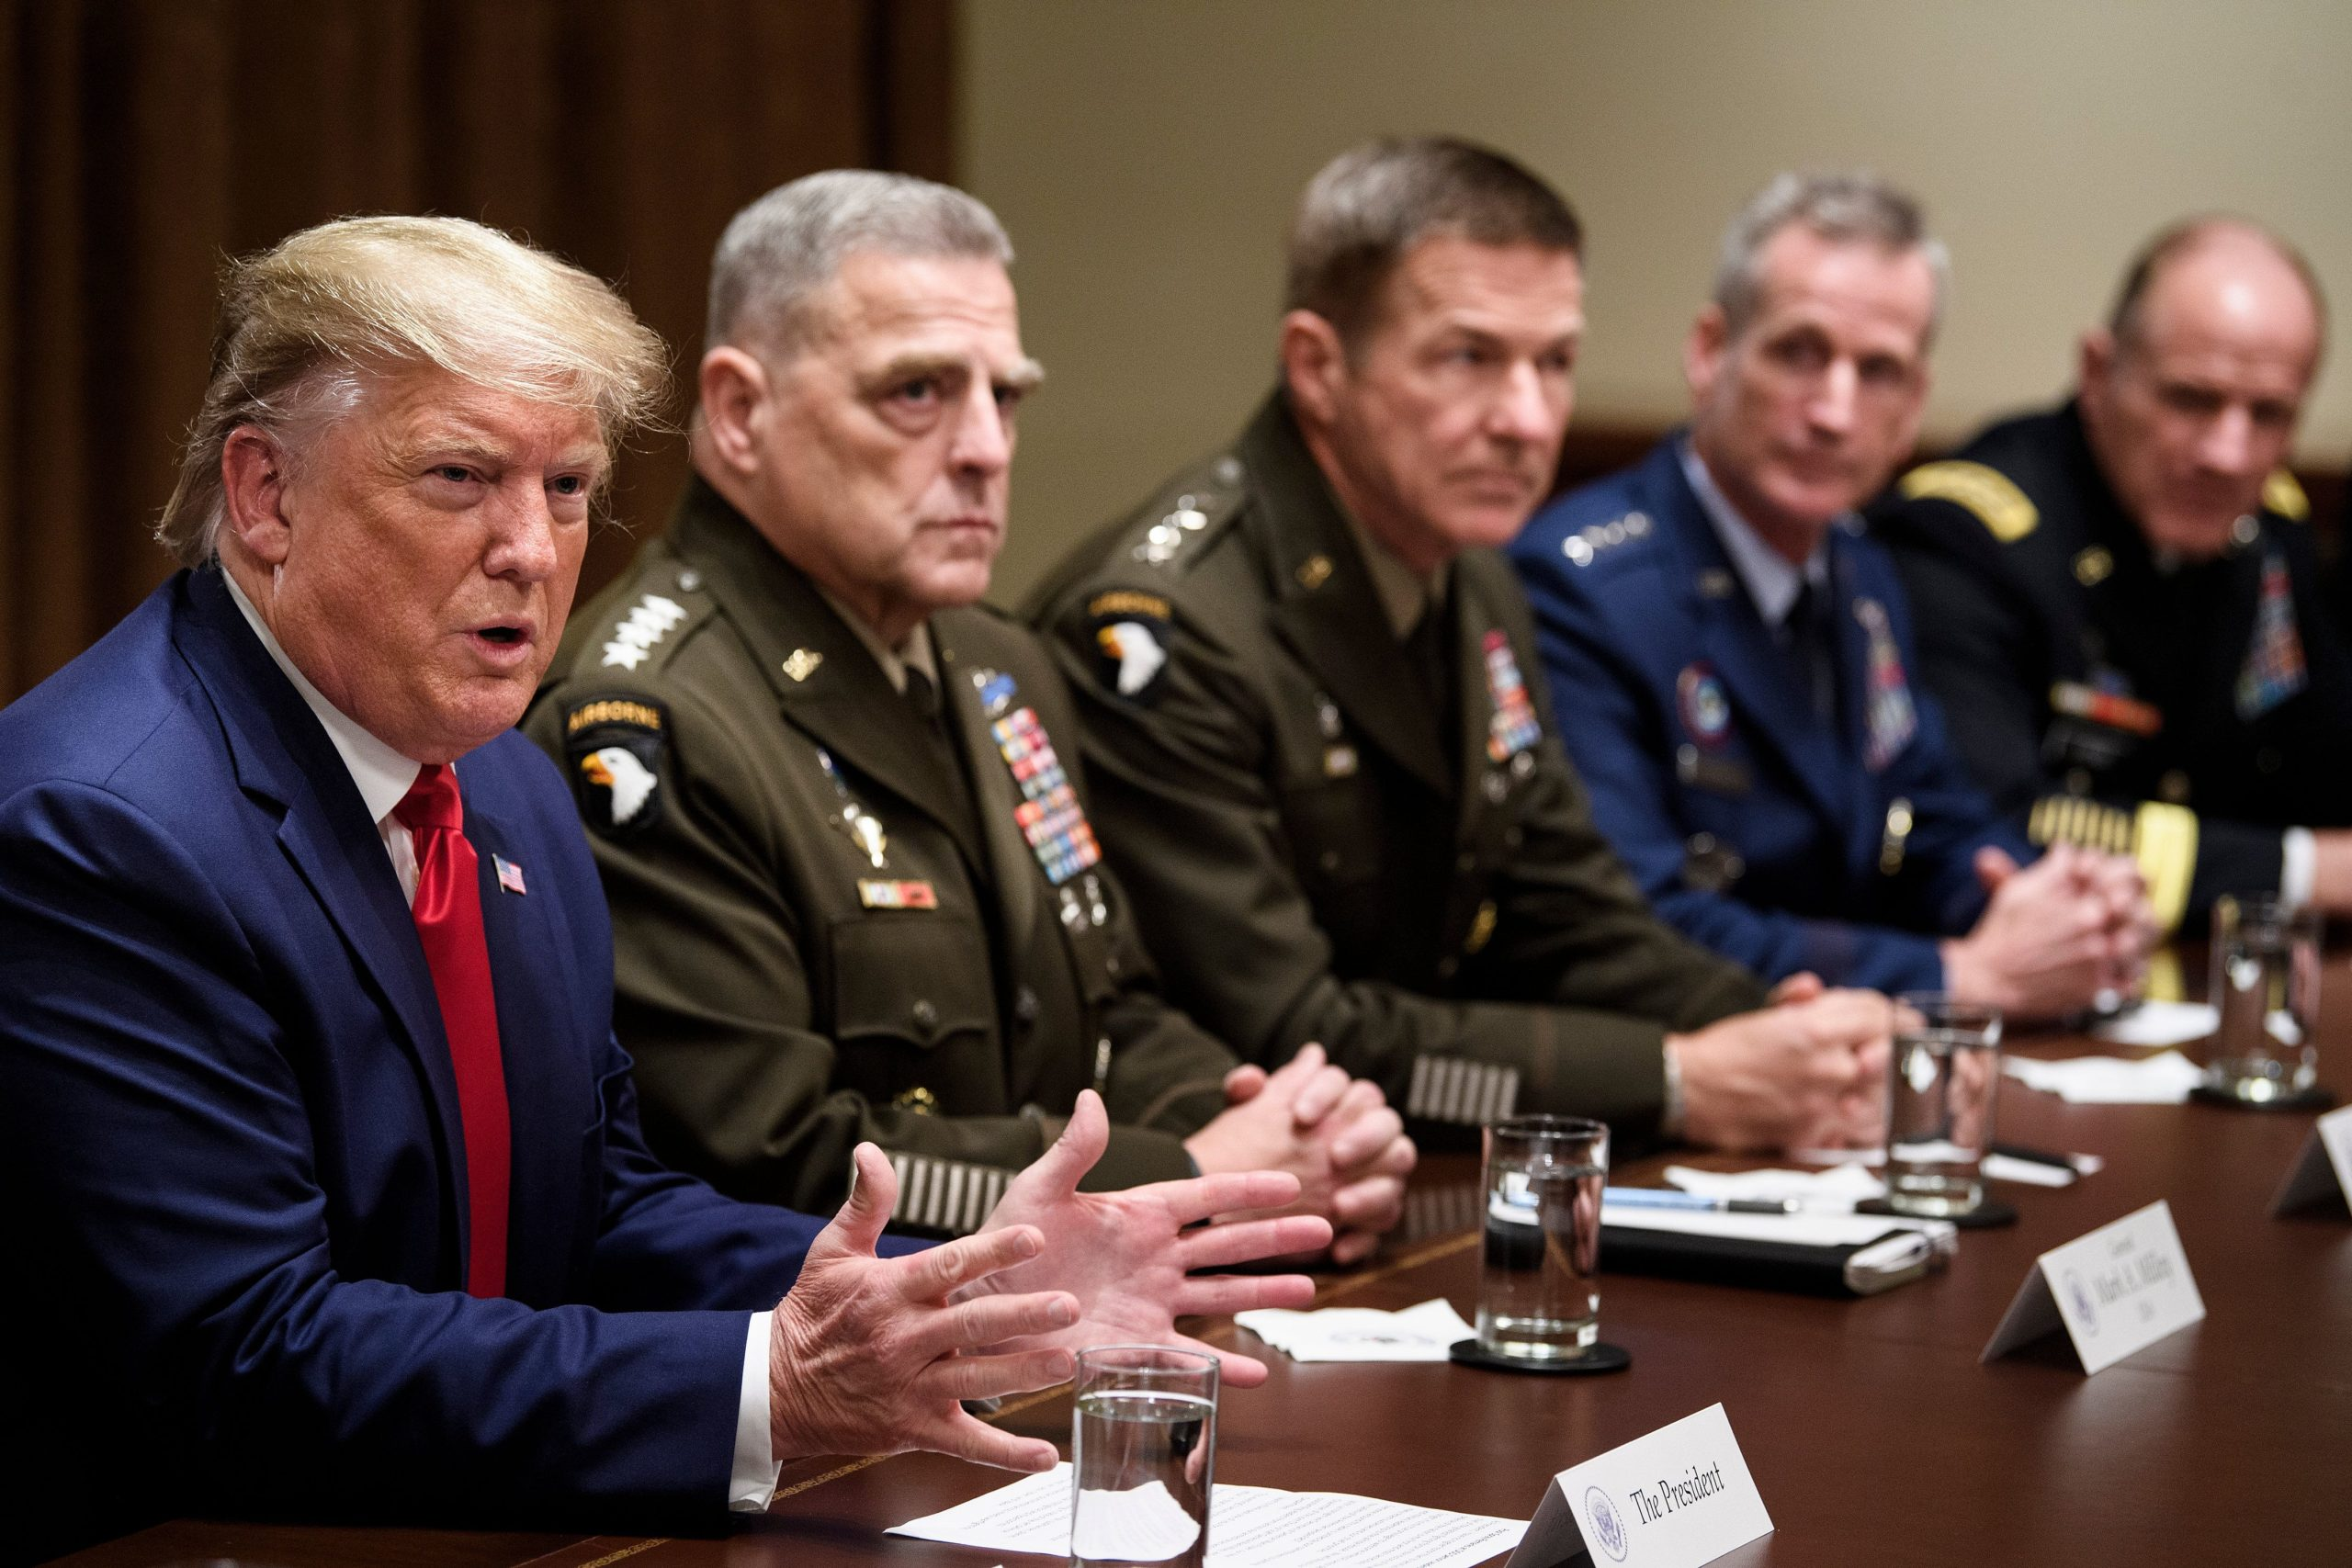 Chairman of the Joint Chiefs of Staff Army General Mark A. Milley (2nd L) and others listen as US President Donald Trump speaks during a meeting with senior military leaders in the Cabinet Room of the White House October 7, 2019, in Washington, DC. (Photo by Brendan Smialowski / AFP) (Photo by BRENDAN SMIALOWSKI/AFP via Getty Images)